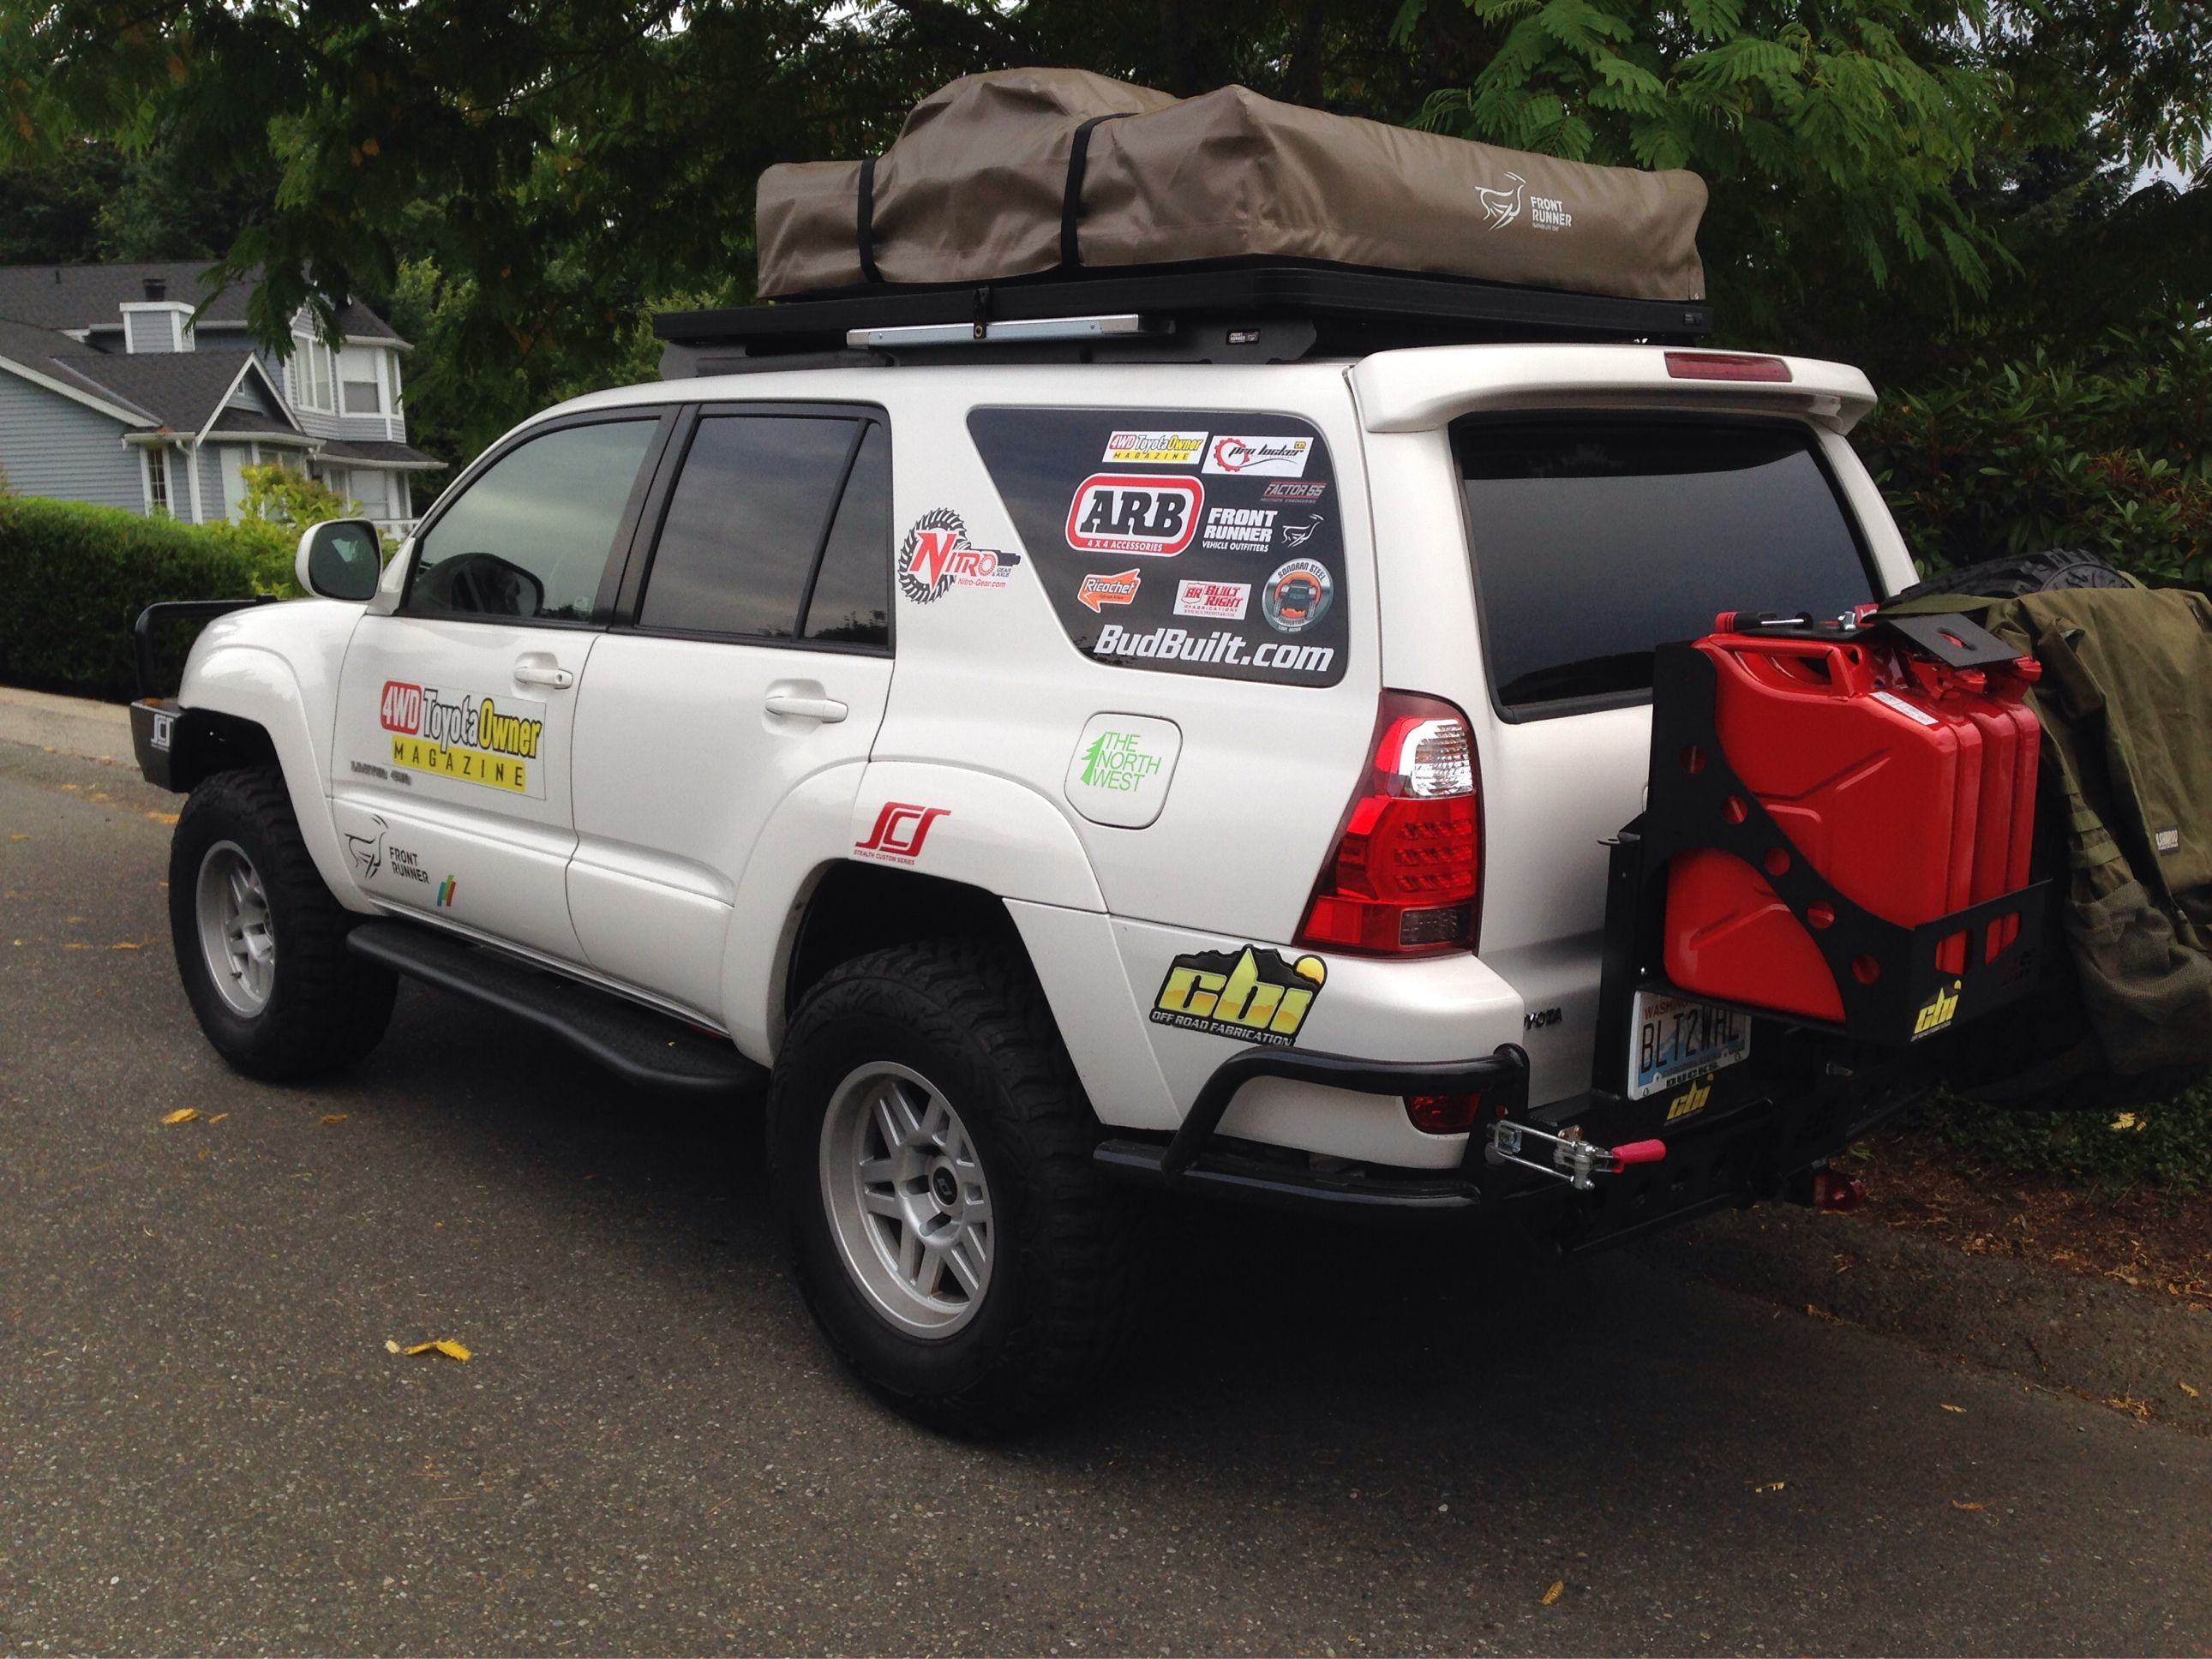 Check Out The 4wd Toyota Owner 4th Gen 4runner Build Arb